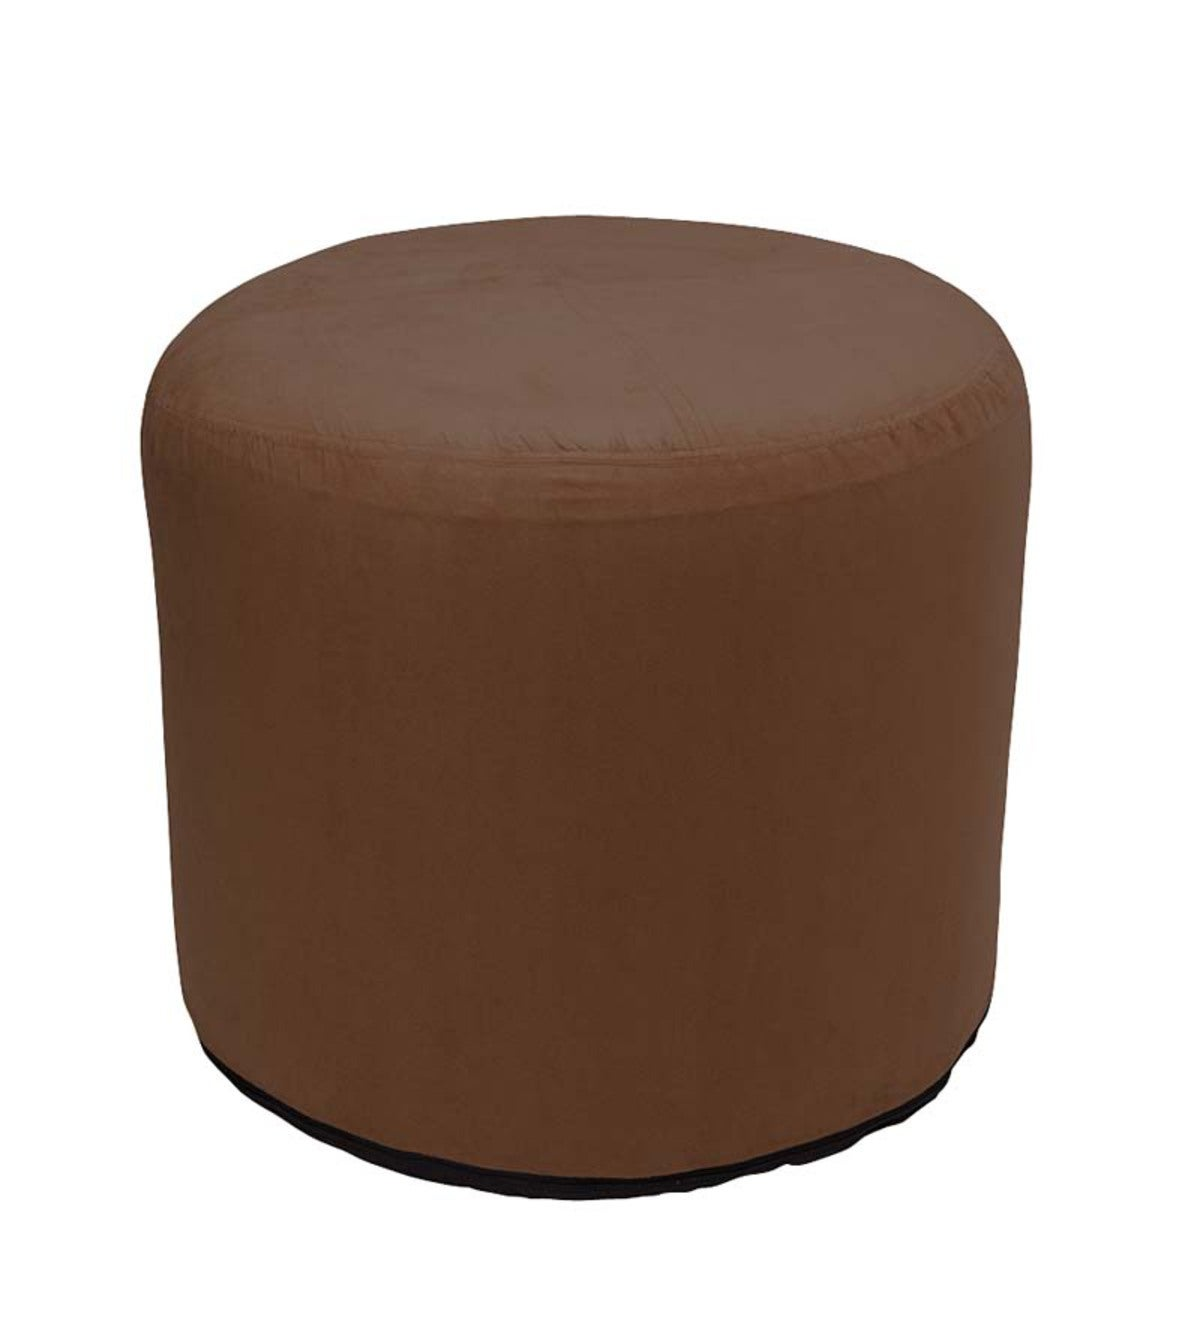 Large Round Inflatable Indoor Ottoman Pouf - Chocolate